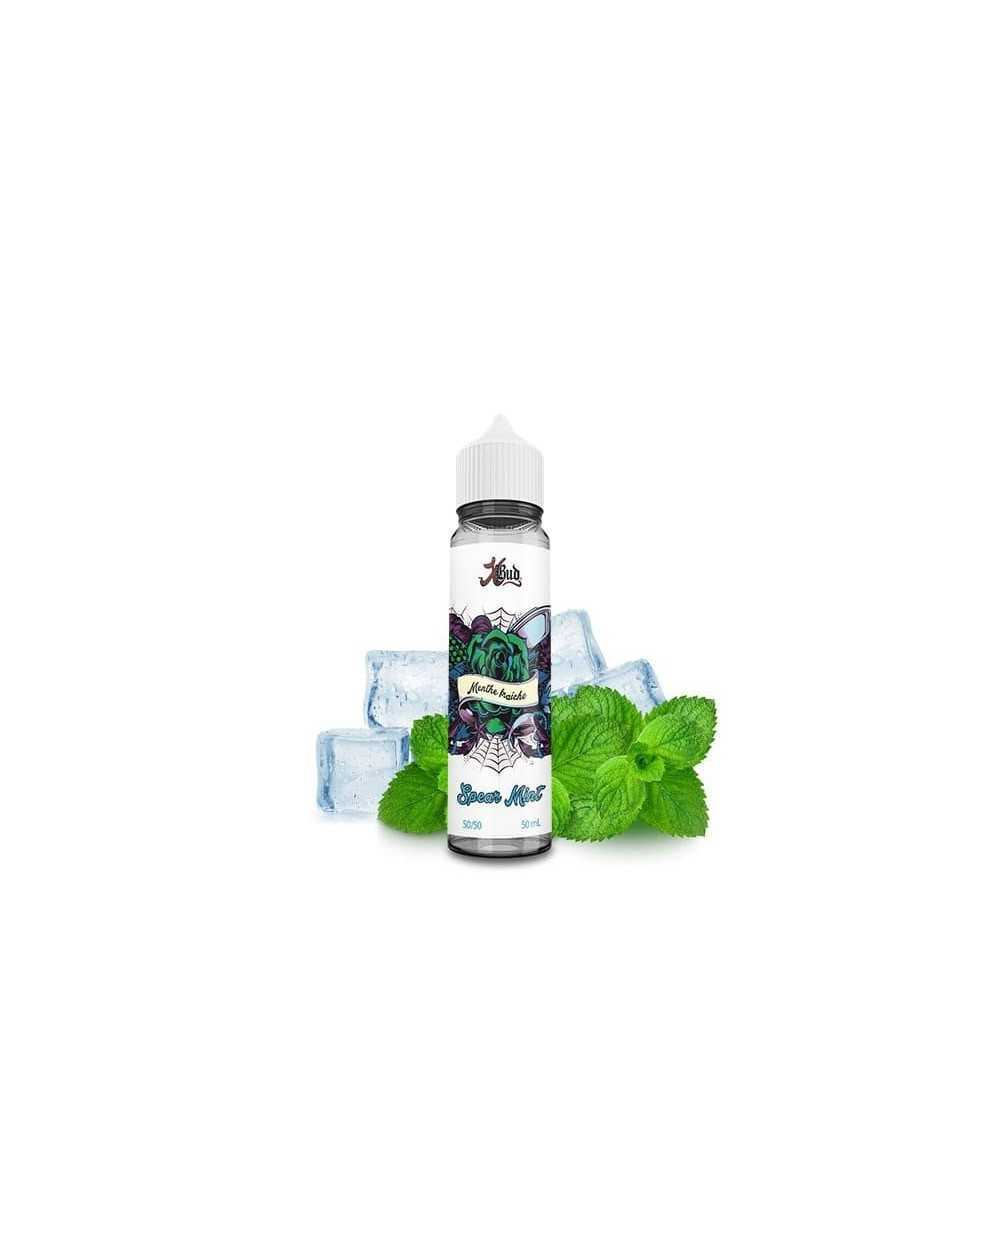 Spear Mint 50ml - Xbud de Liquideo-1